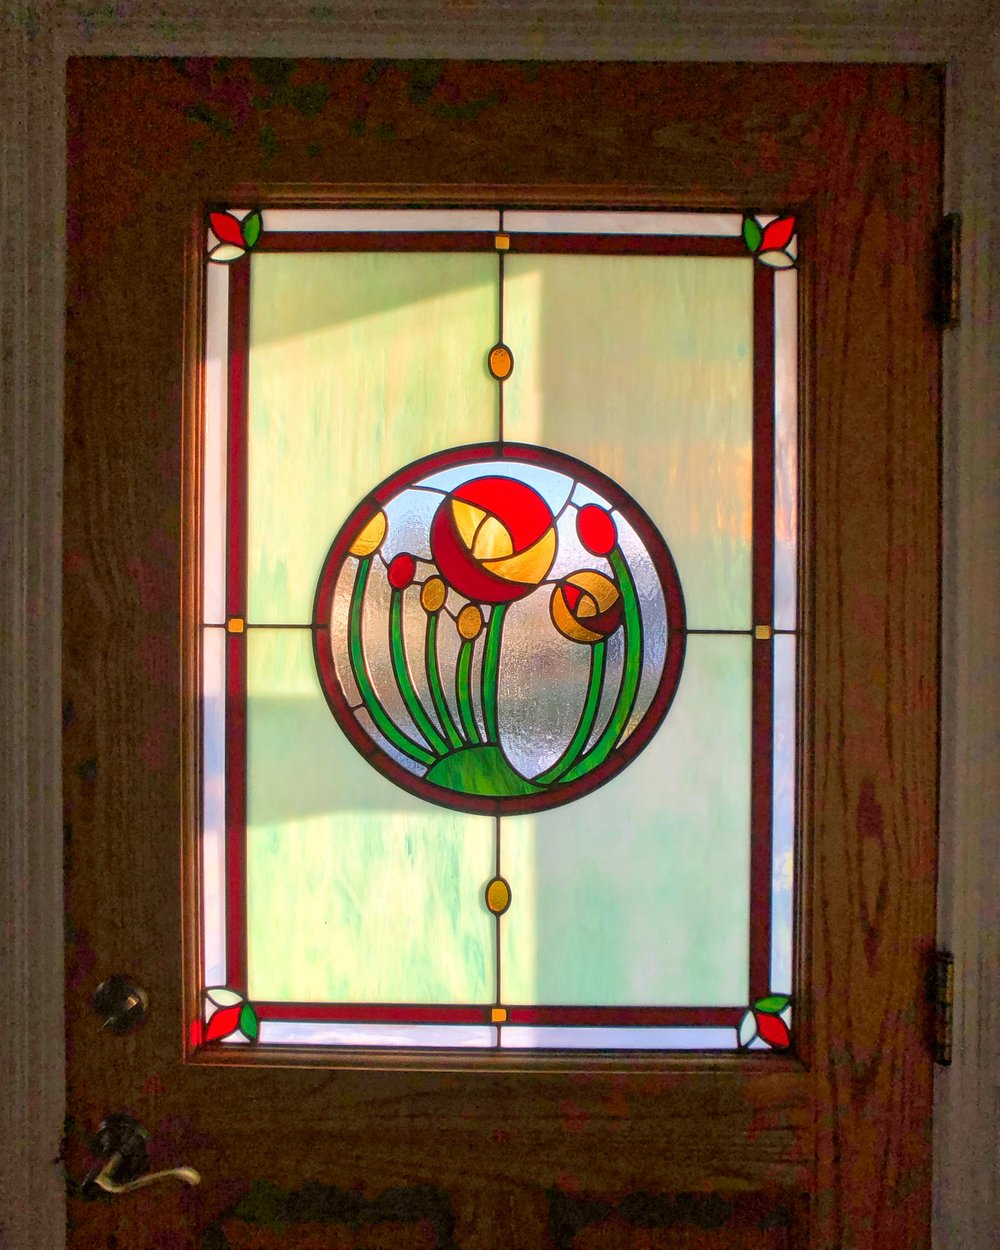 leaded glass stained glass art glass bay area custom design legacy glass studios design front door flowers front entry green red border leaves abstract sunset light opalescent.jpg